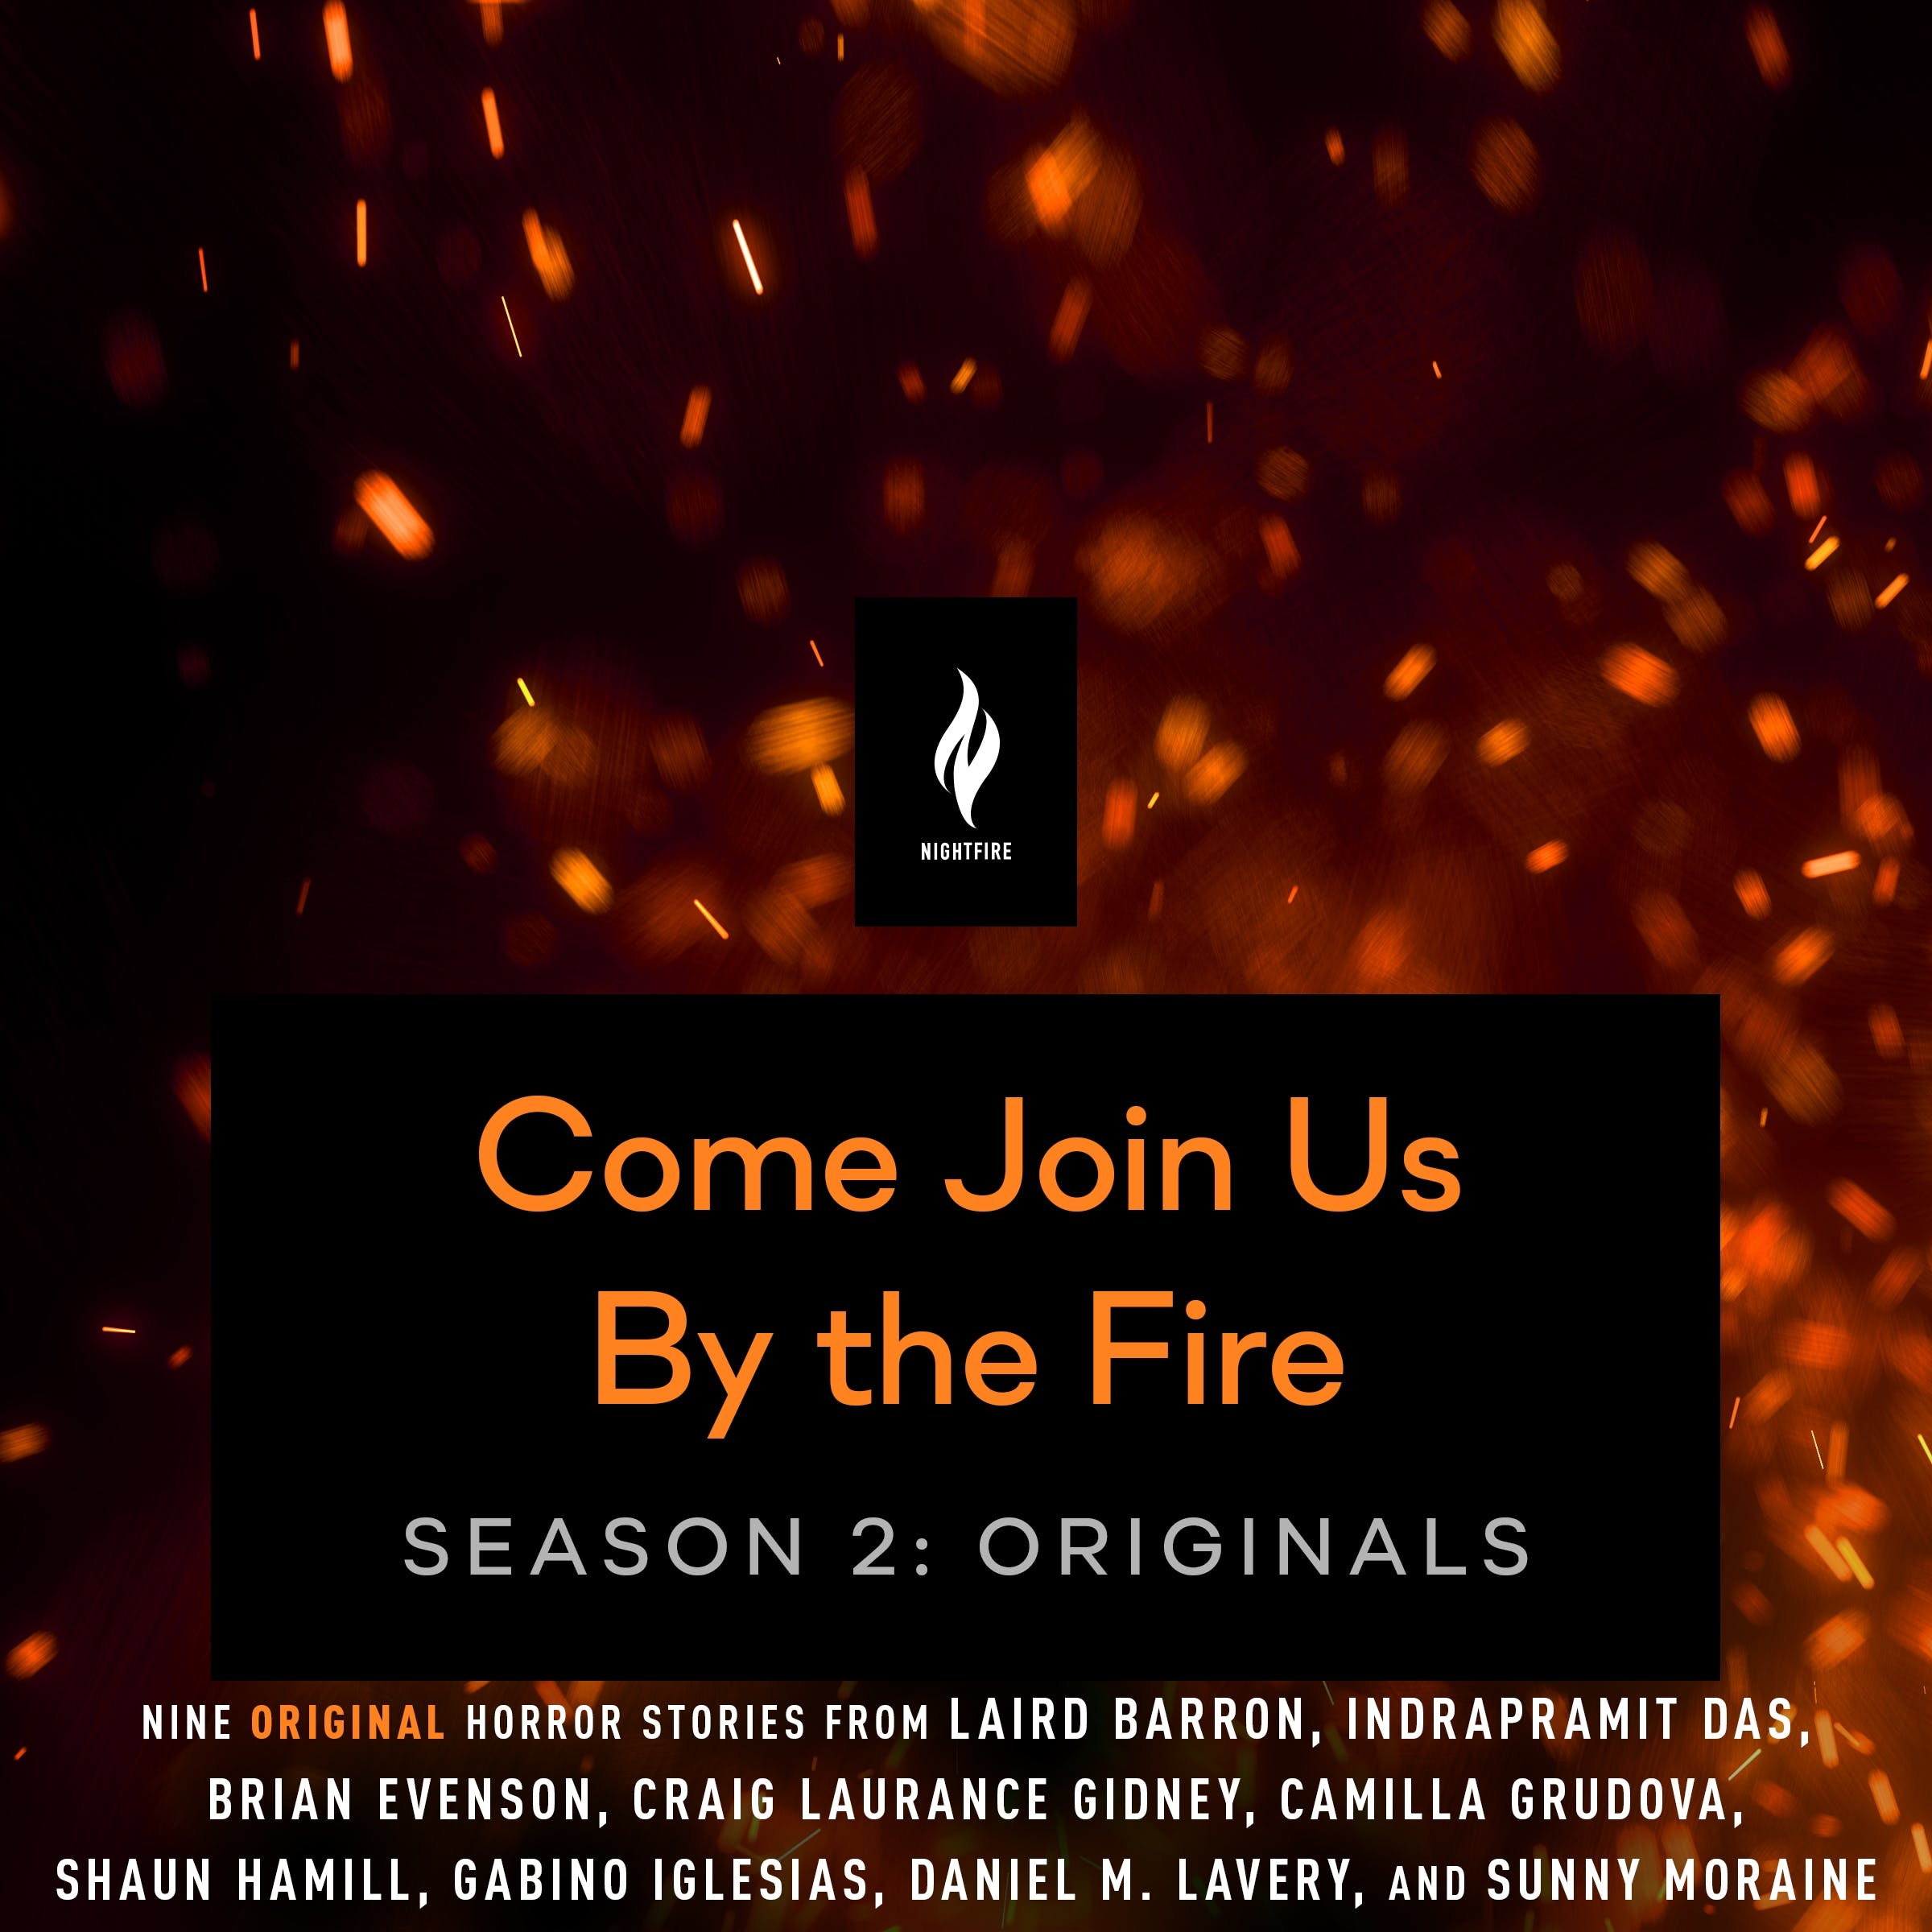 Image of Come Join Us By The Fire Season 2, Originals